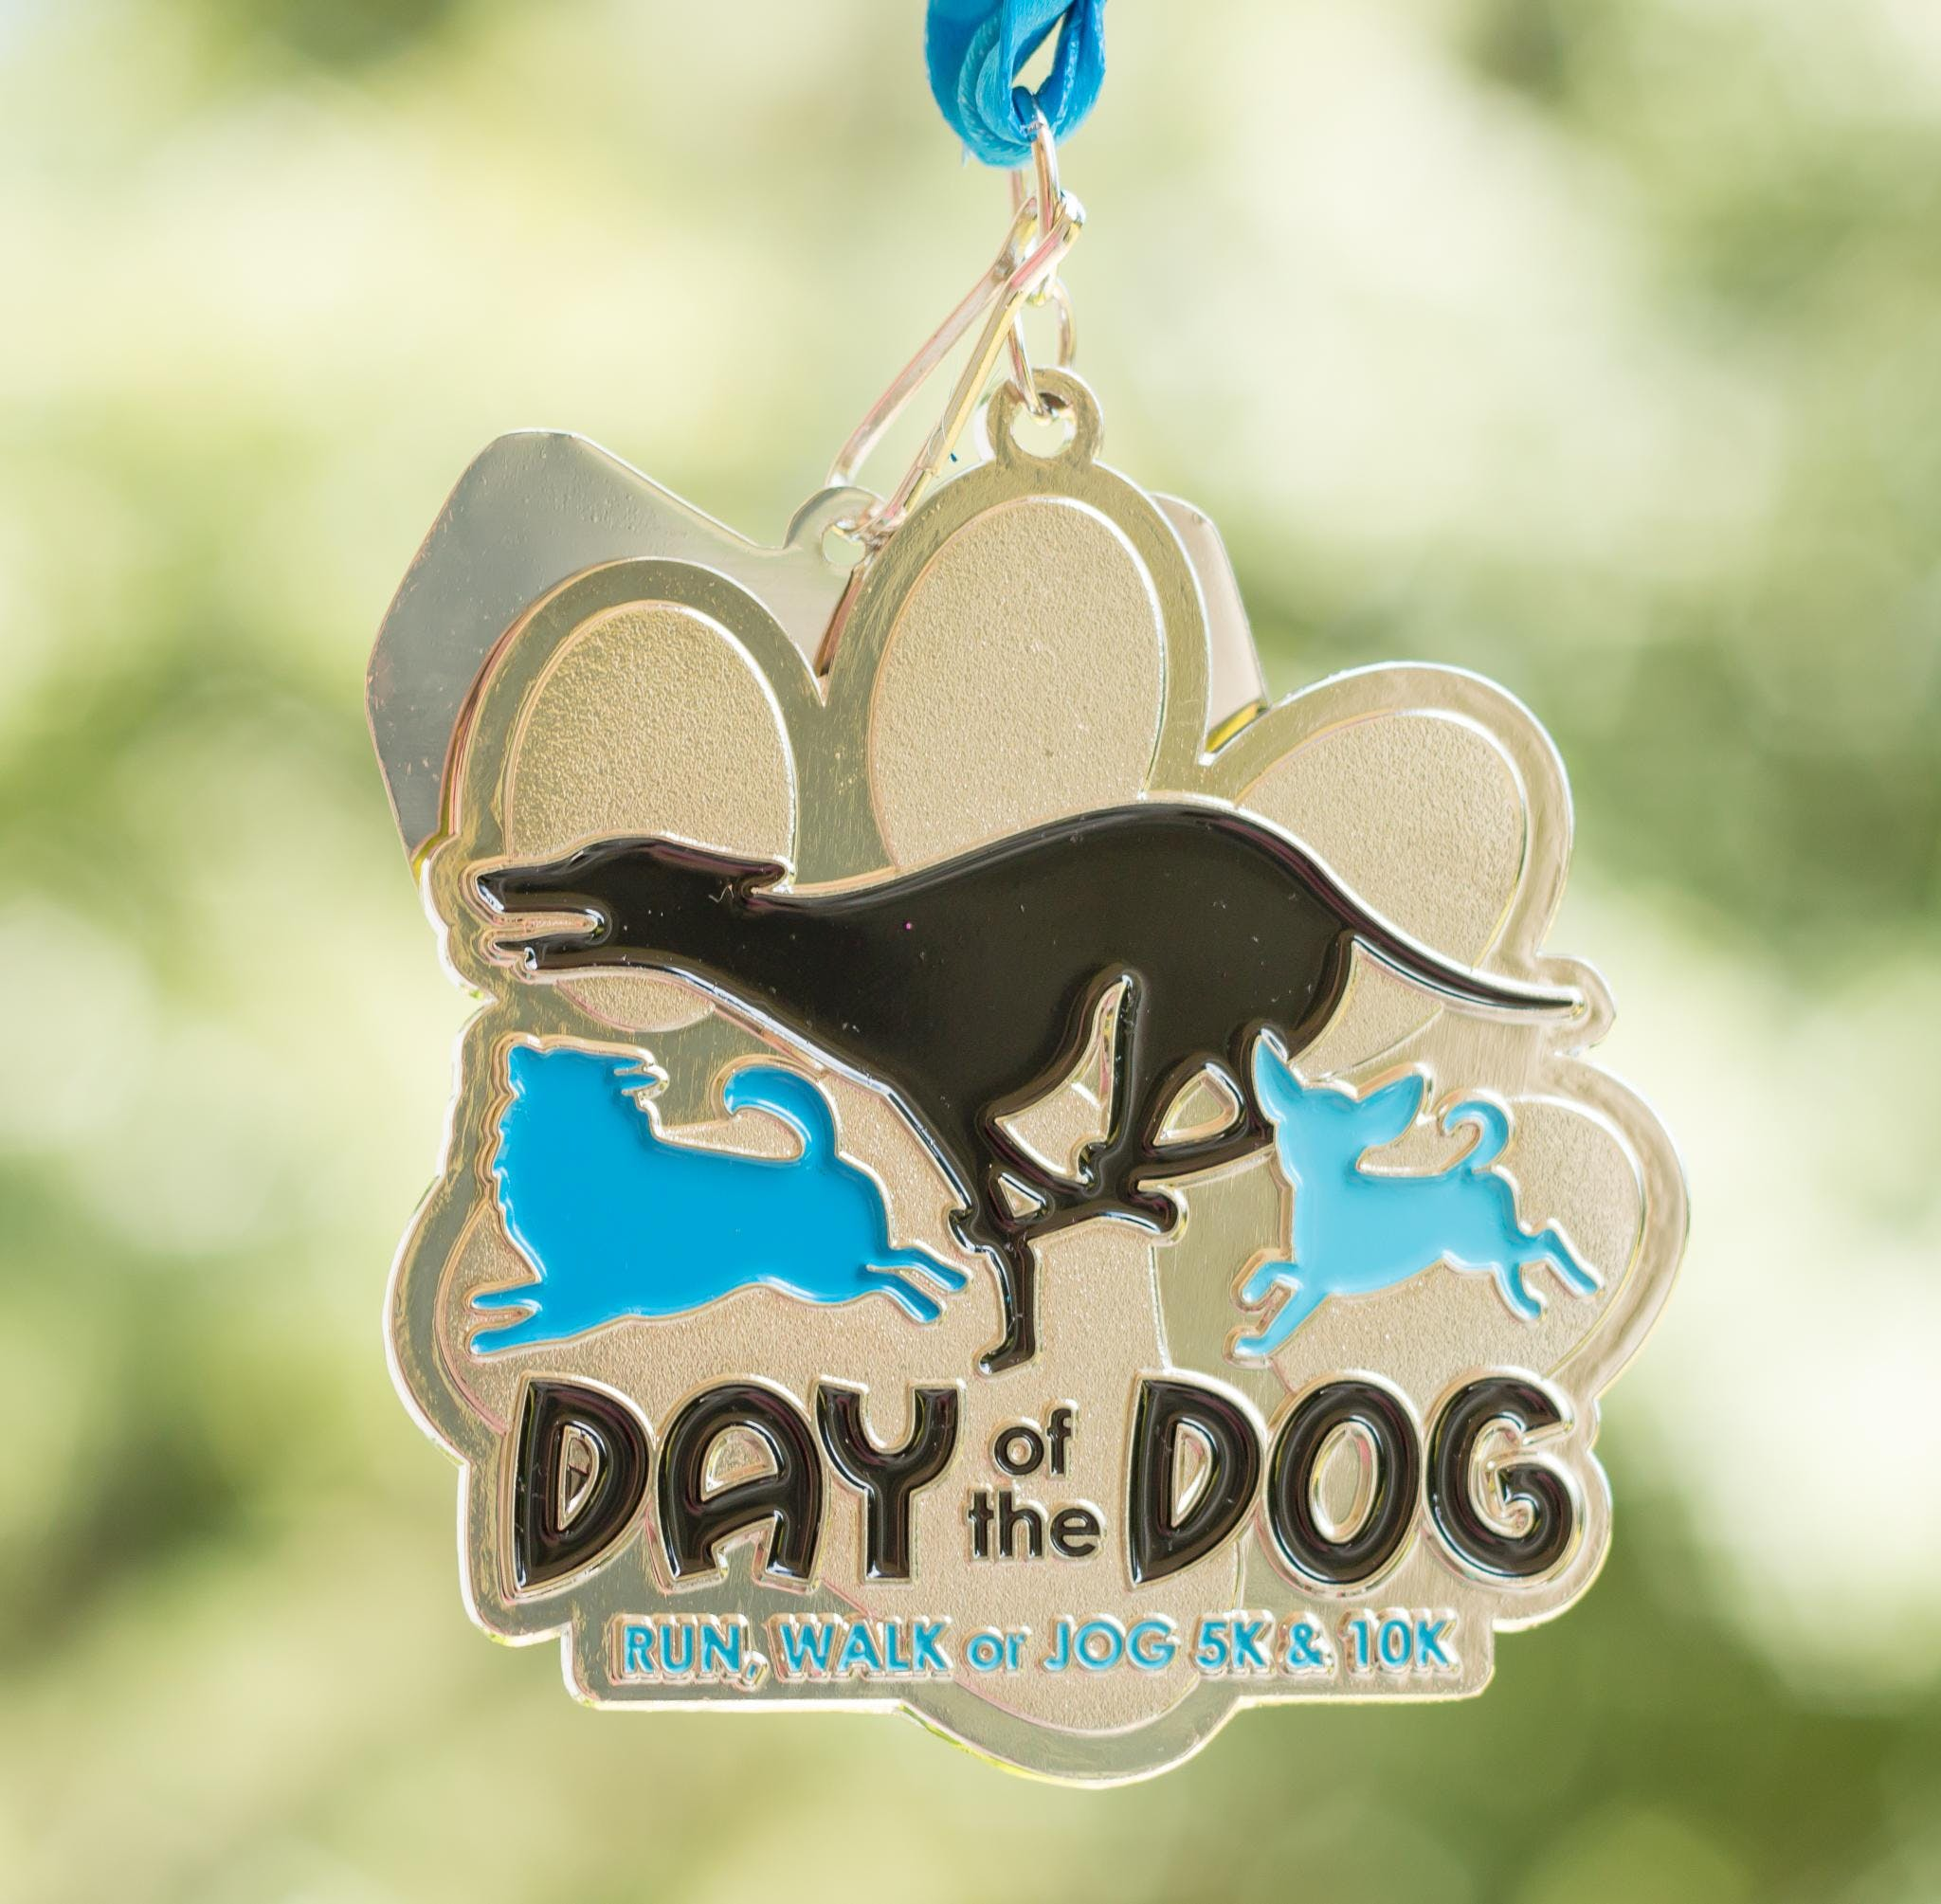 Now Only $14! Day of the Dog: Run, Walk or Jog 5K & 10K - New York